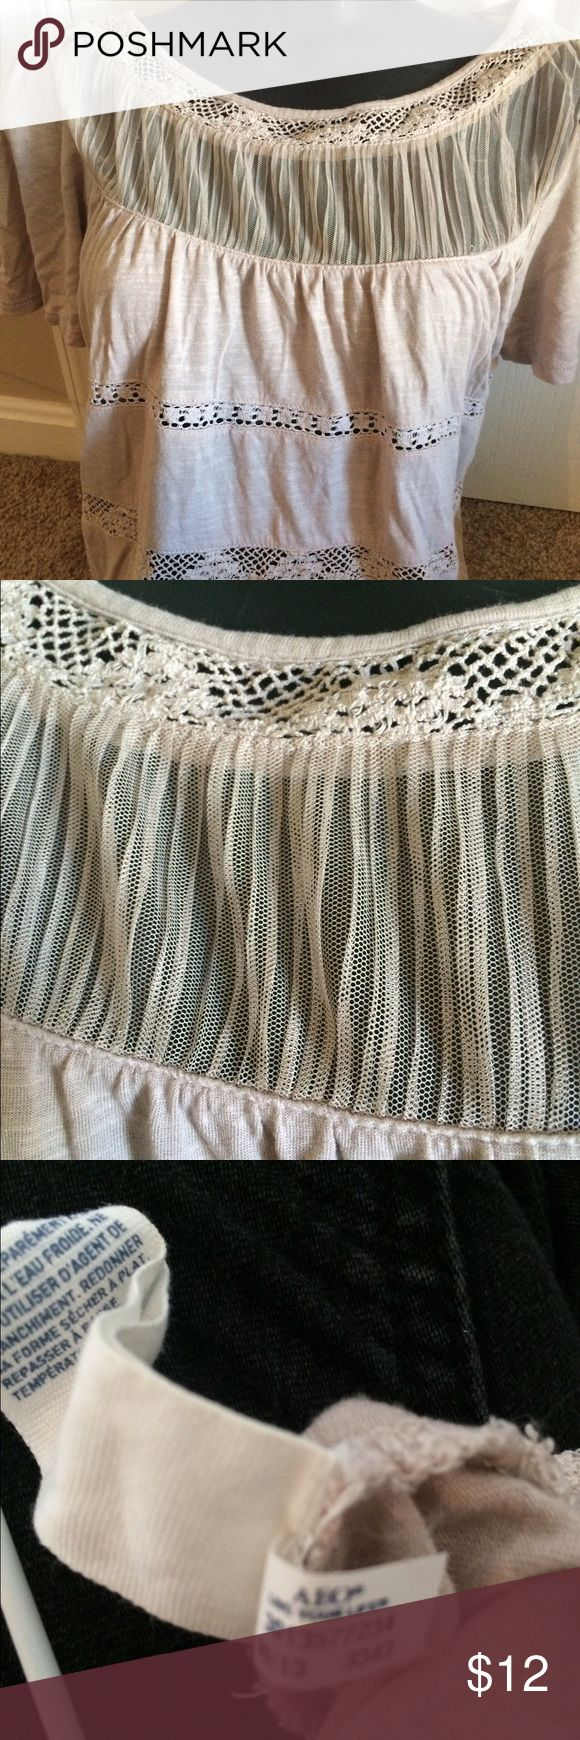 NWOT American Eagle outfitters beige sz small top New without tags's adorable American Eagle outfitters size small top. Adorable lace detail and cool gauze at neck. A basic staples for spring and yet really dresses up an outfit! American Eagle Outfitters Tops Tees - Short Sleeve